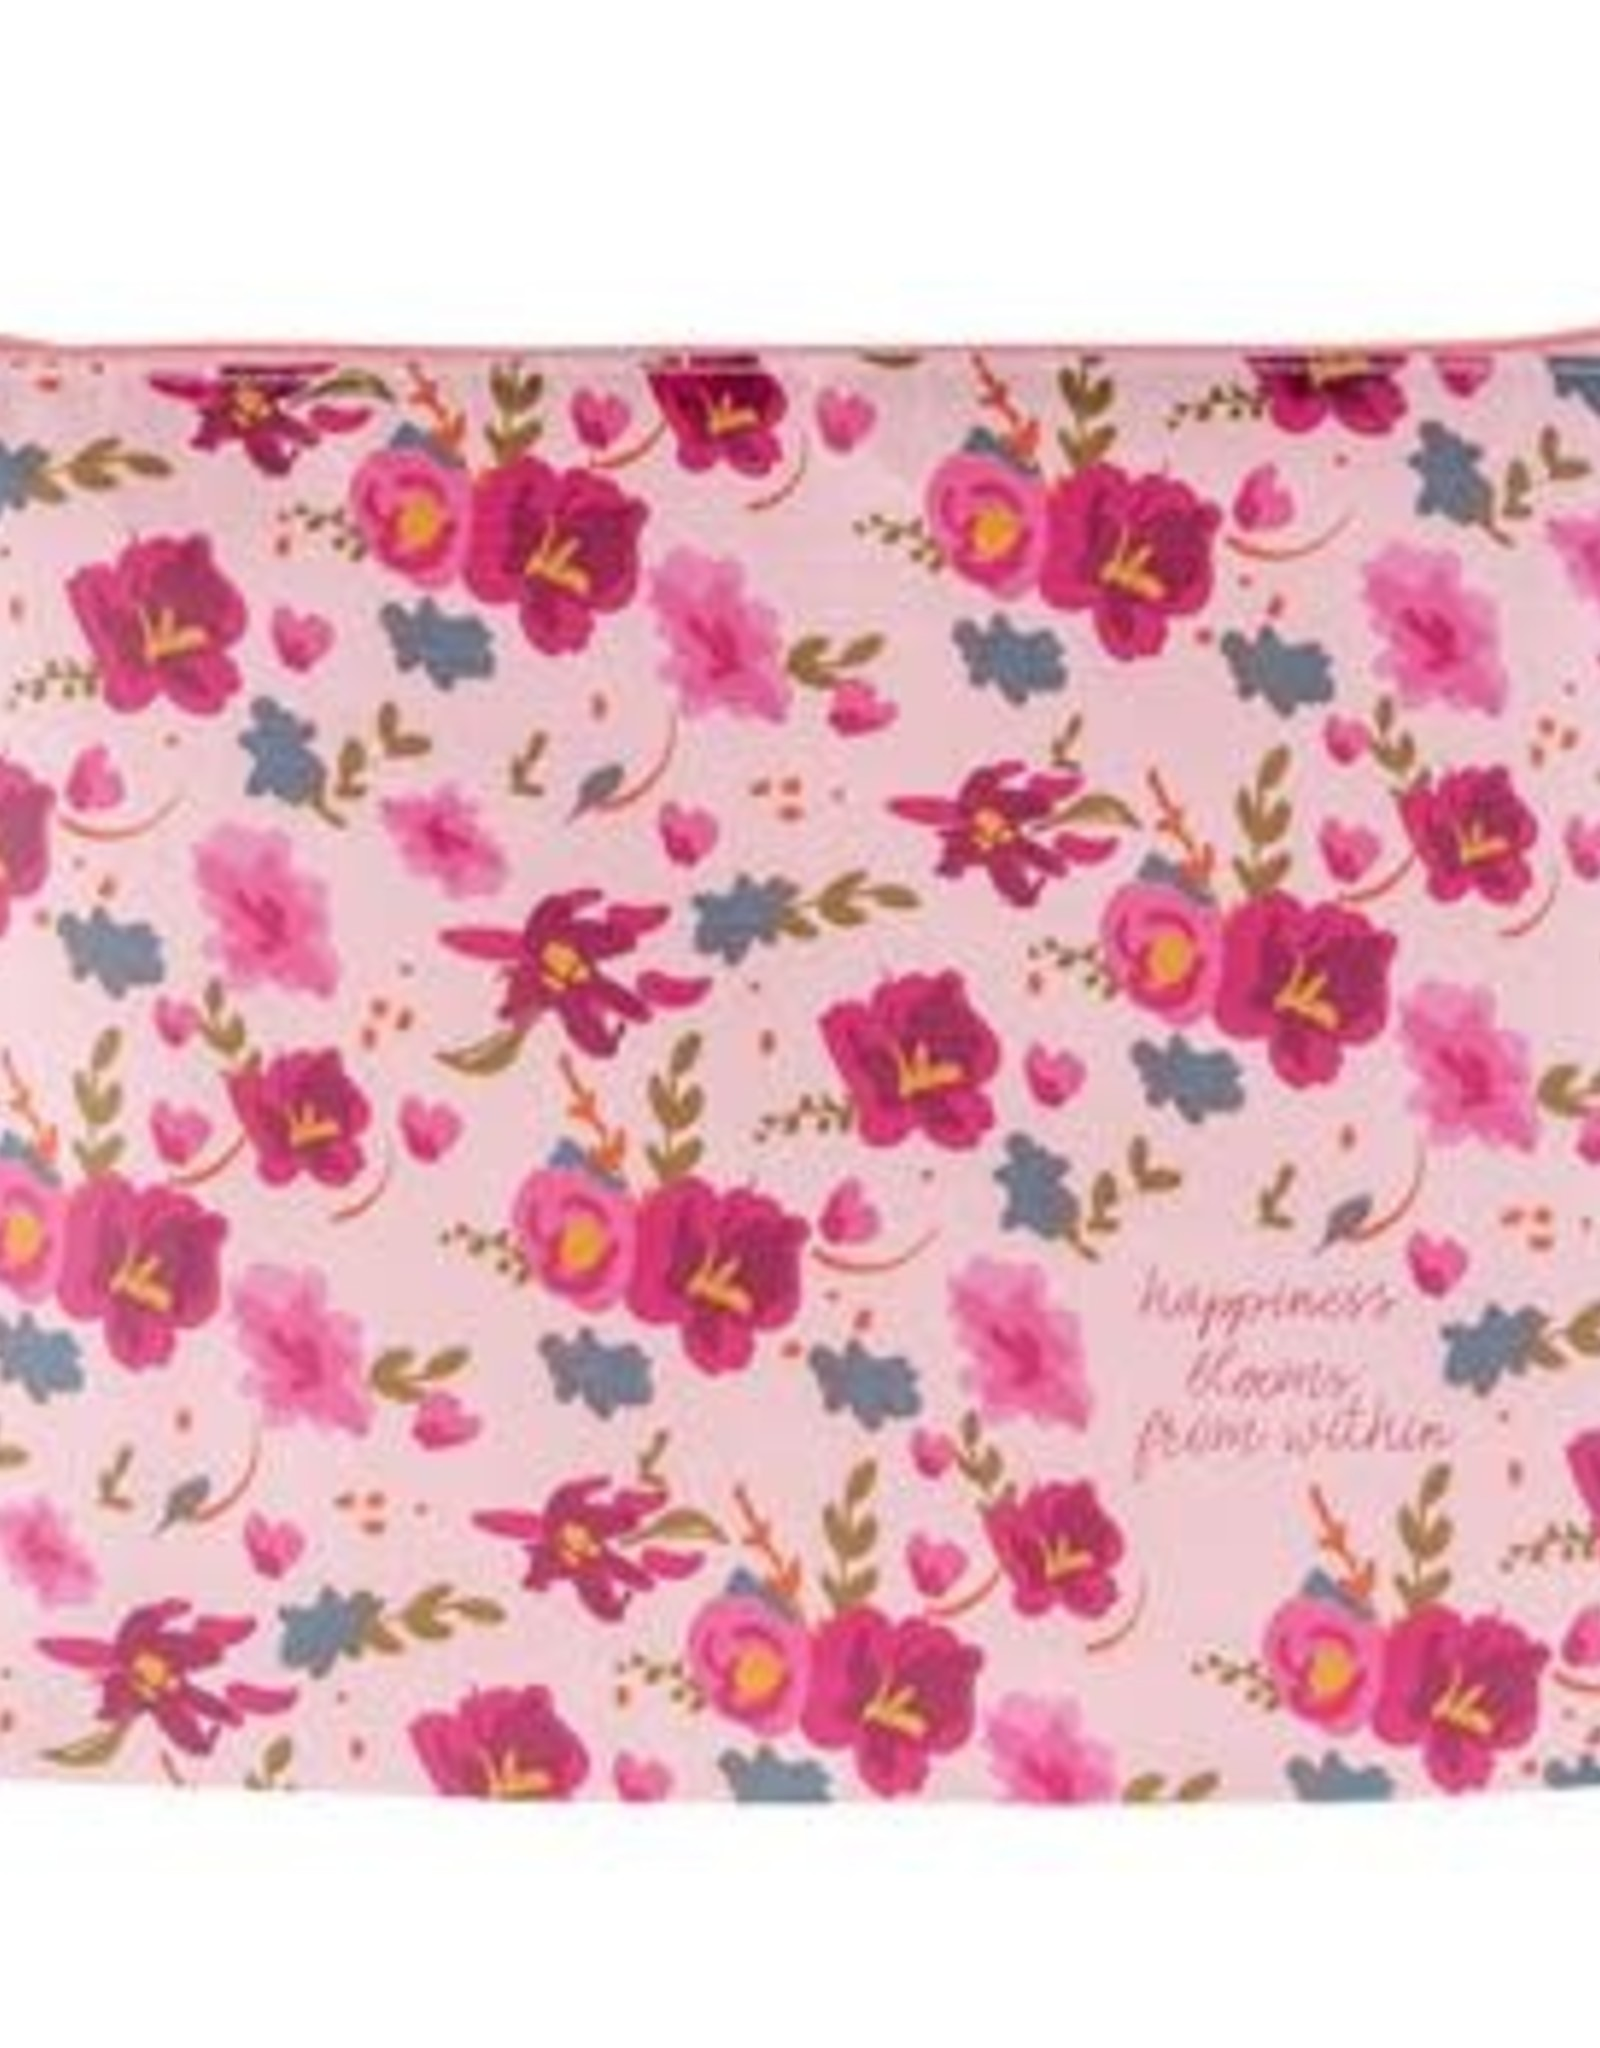 - Large Recycled Carry-All Pink Floral Bag